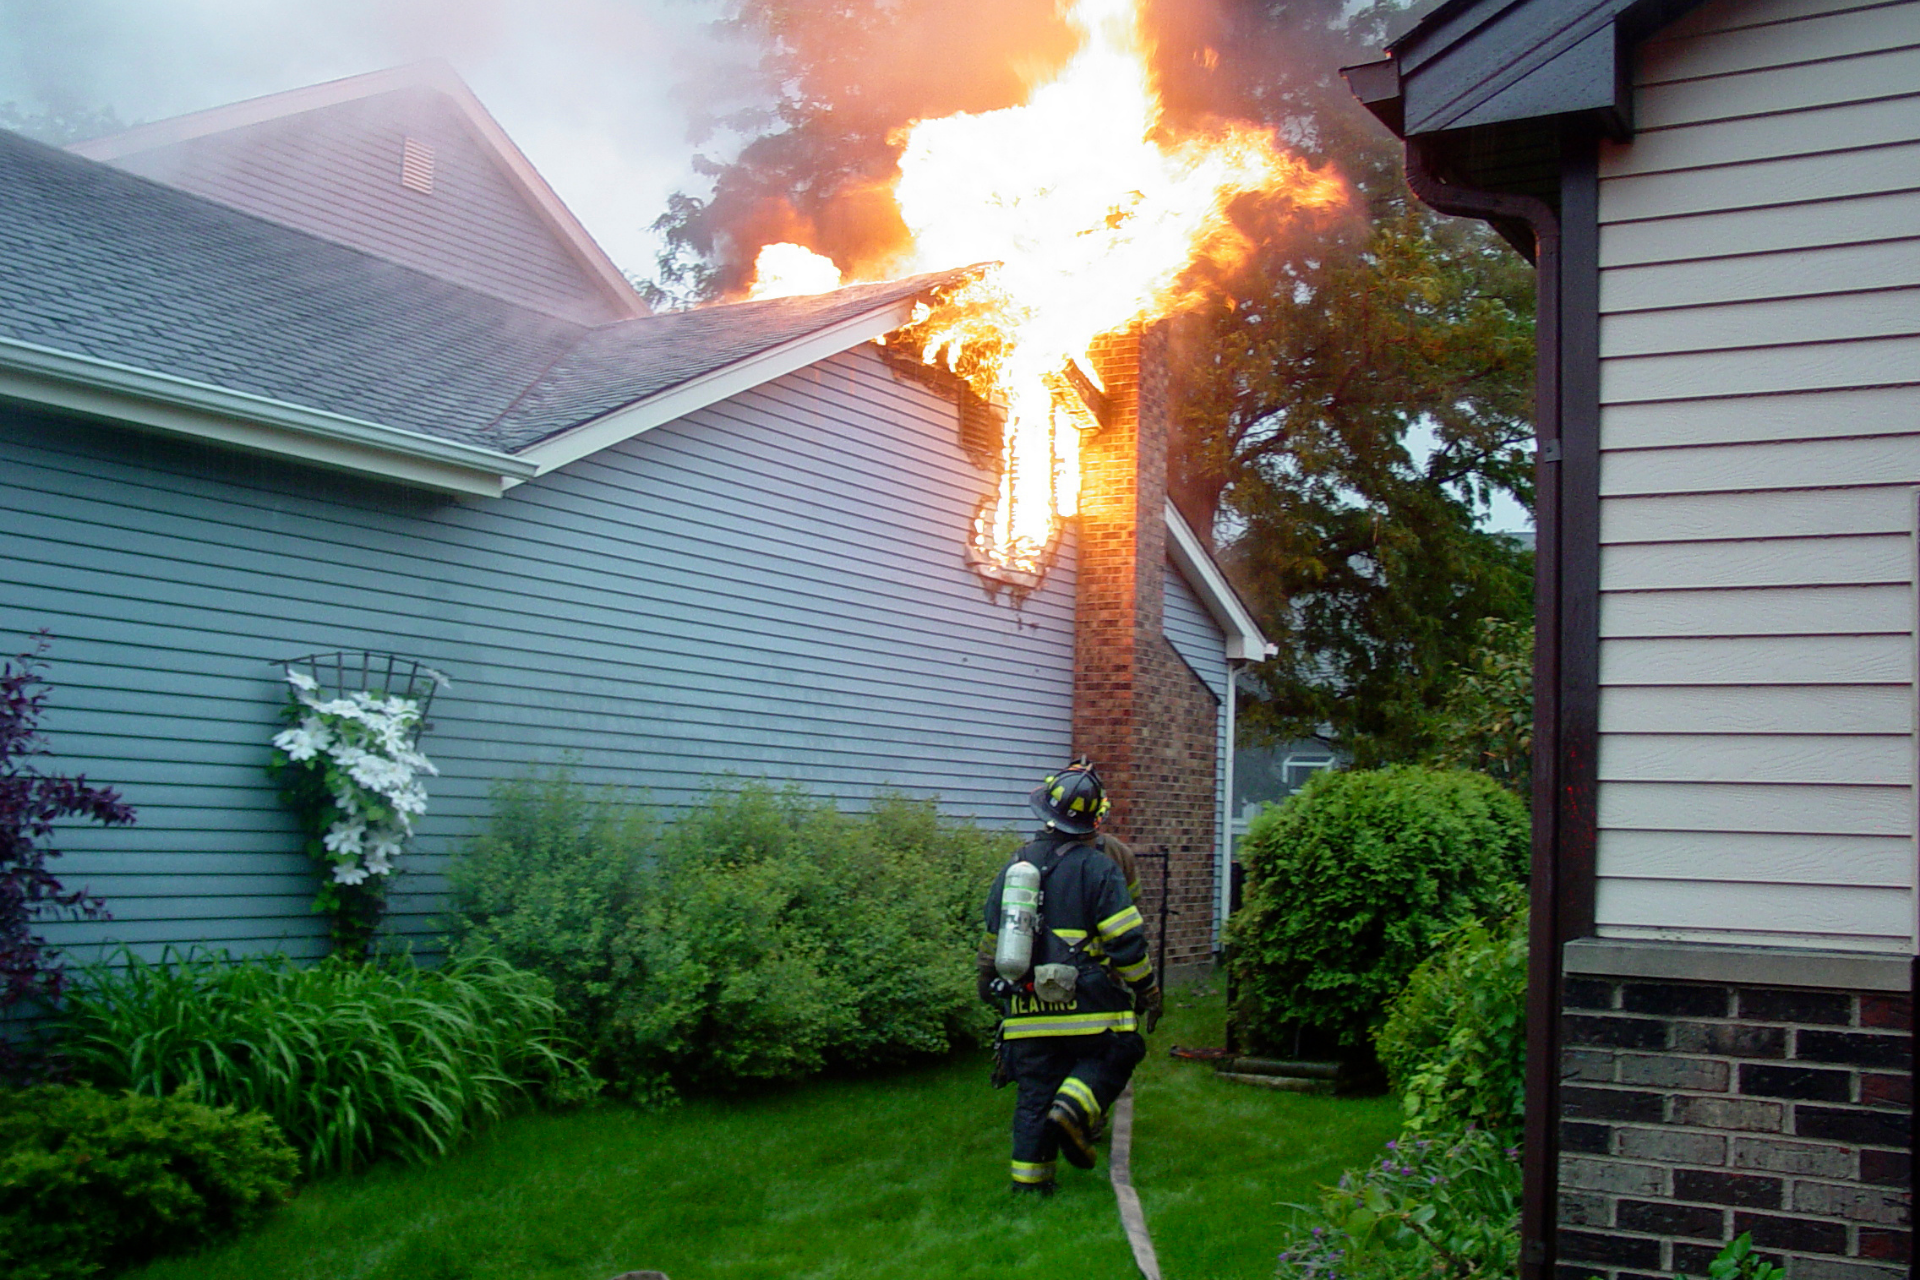 a firefighter fighting a house fire